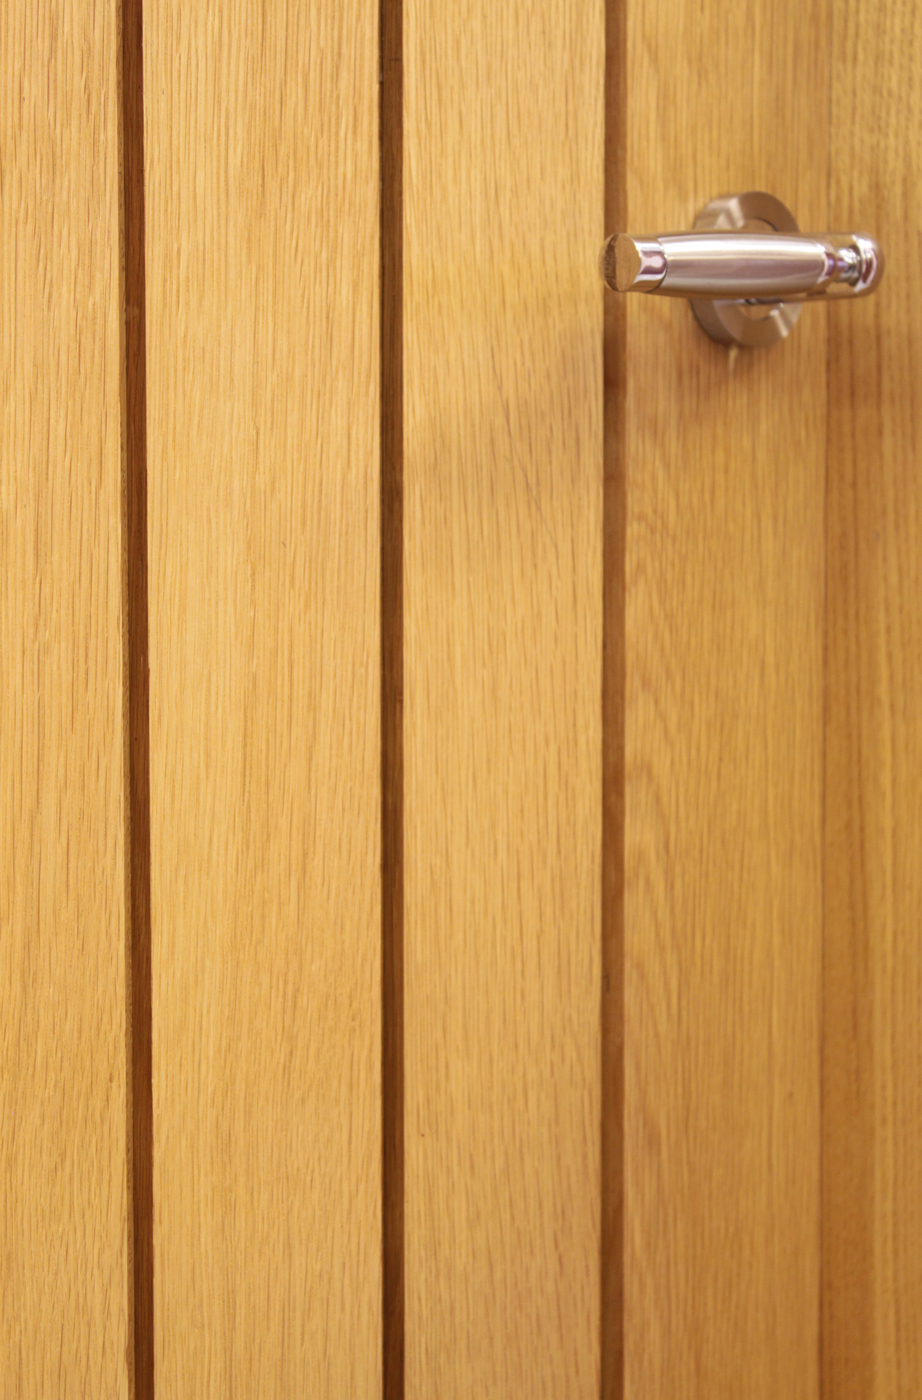 Mexicano A-Grade White Oak Door (40mm) & Mexicano A-Grade White Oak Door (40mm) | Internal Doors | Oak Doors